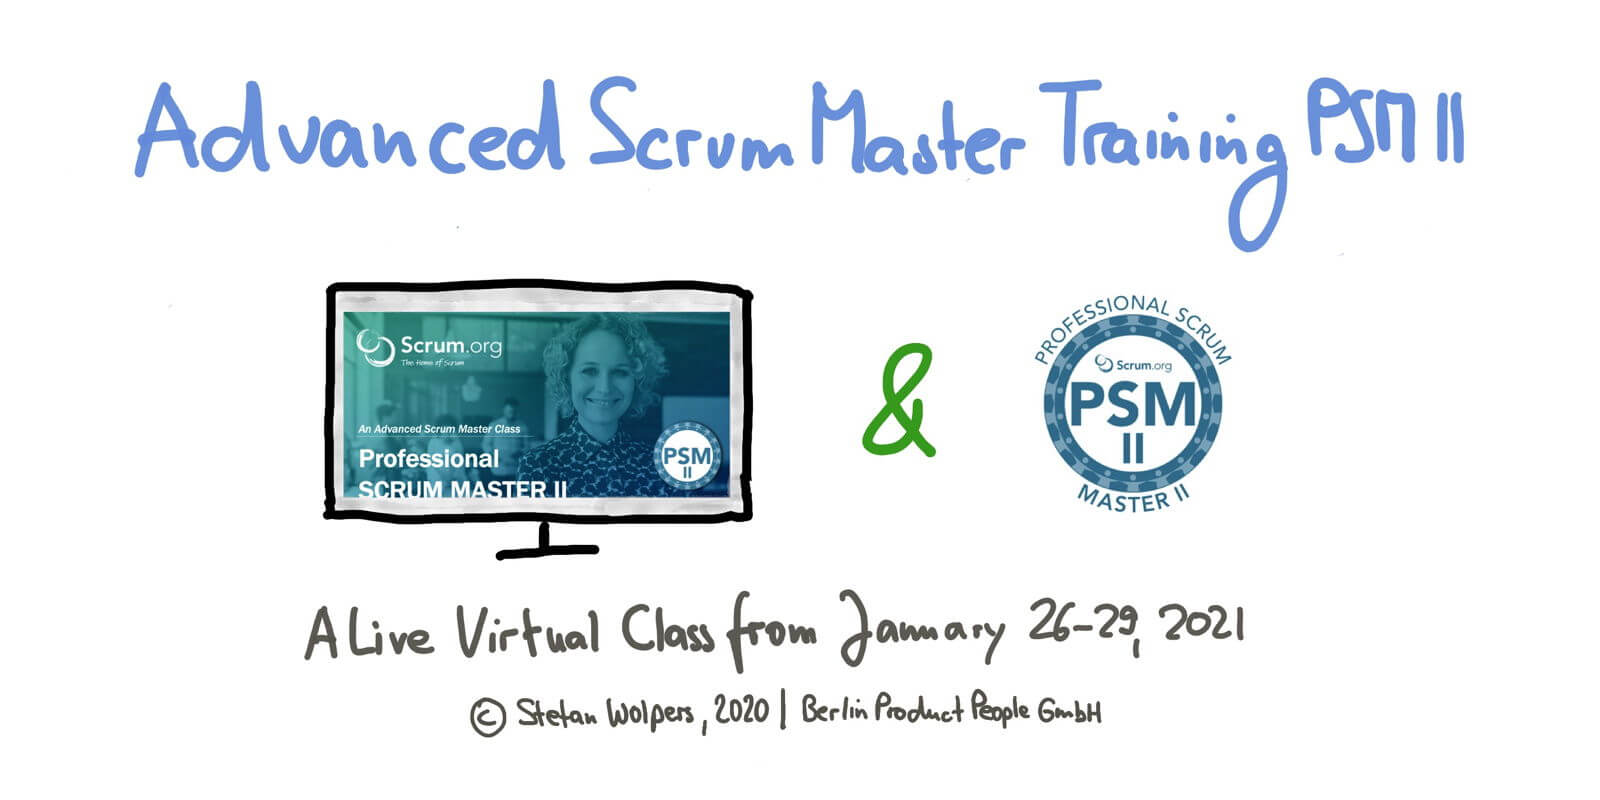 🖥 🇬🇧 Advanced Professional Scrum Master Online Training w/ PSM II Certificate — January 26-29, 2021 —Berlin Product People GmbH